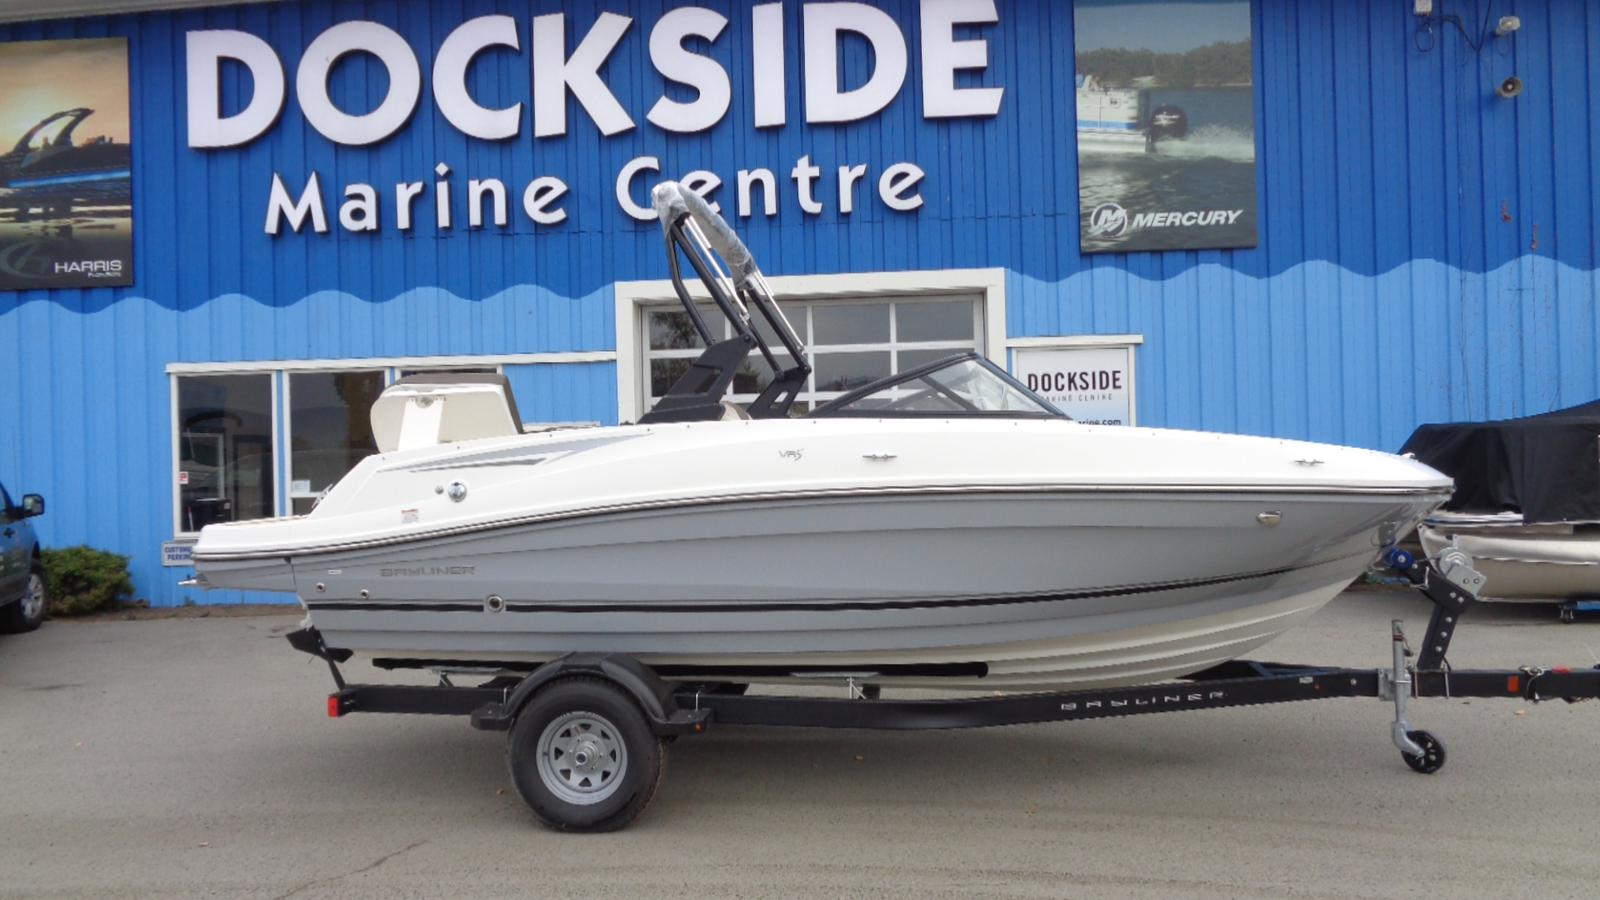 For Sale: 2018 Bayliner Vr5 21ft<br/>Dockside Marine Centre, LTD.